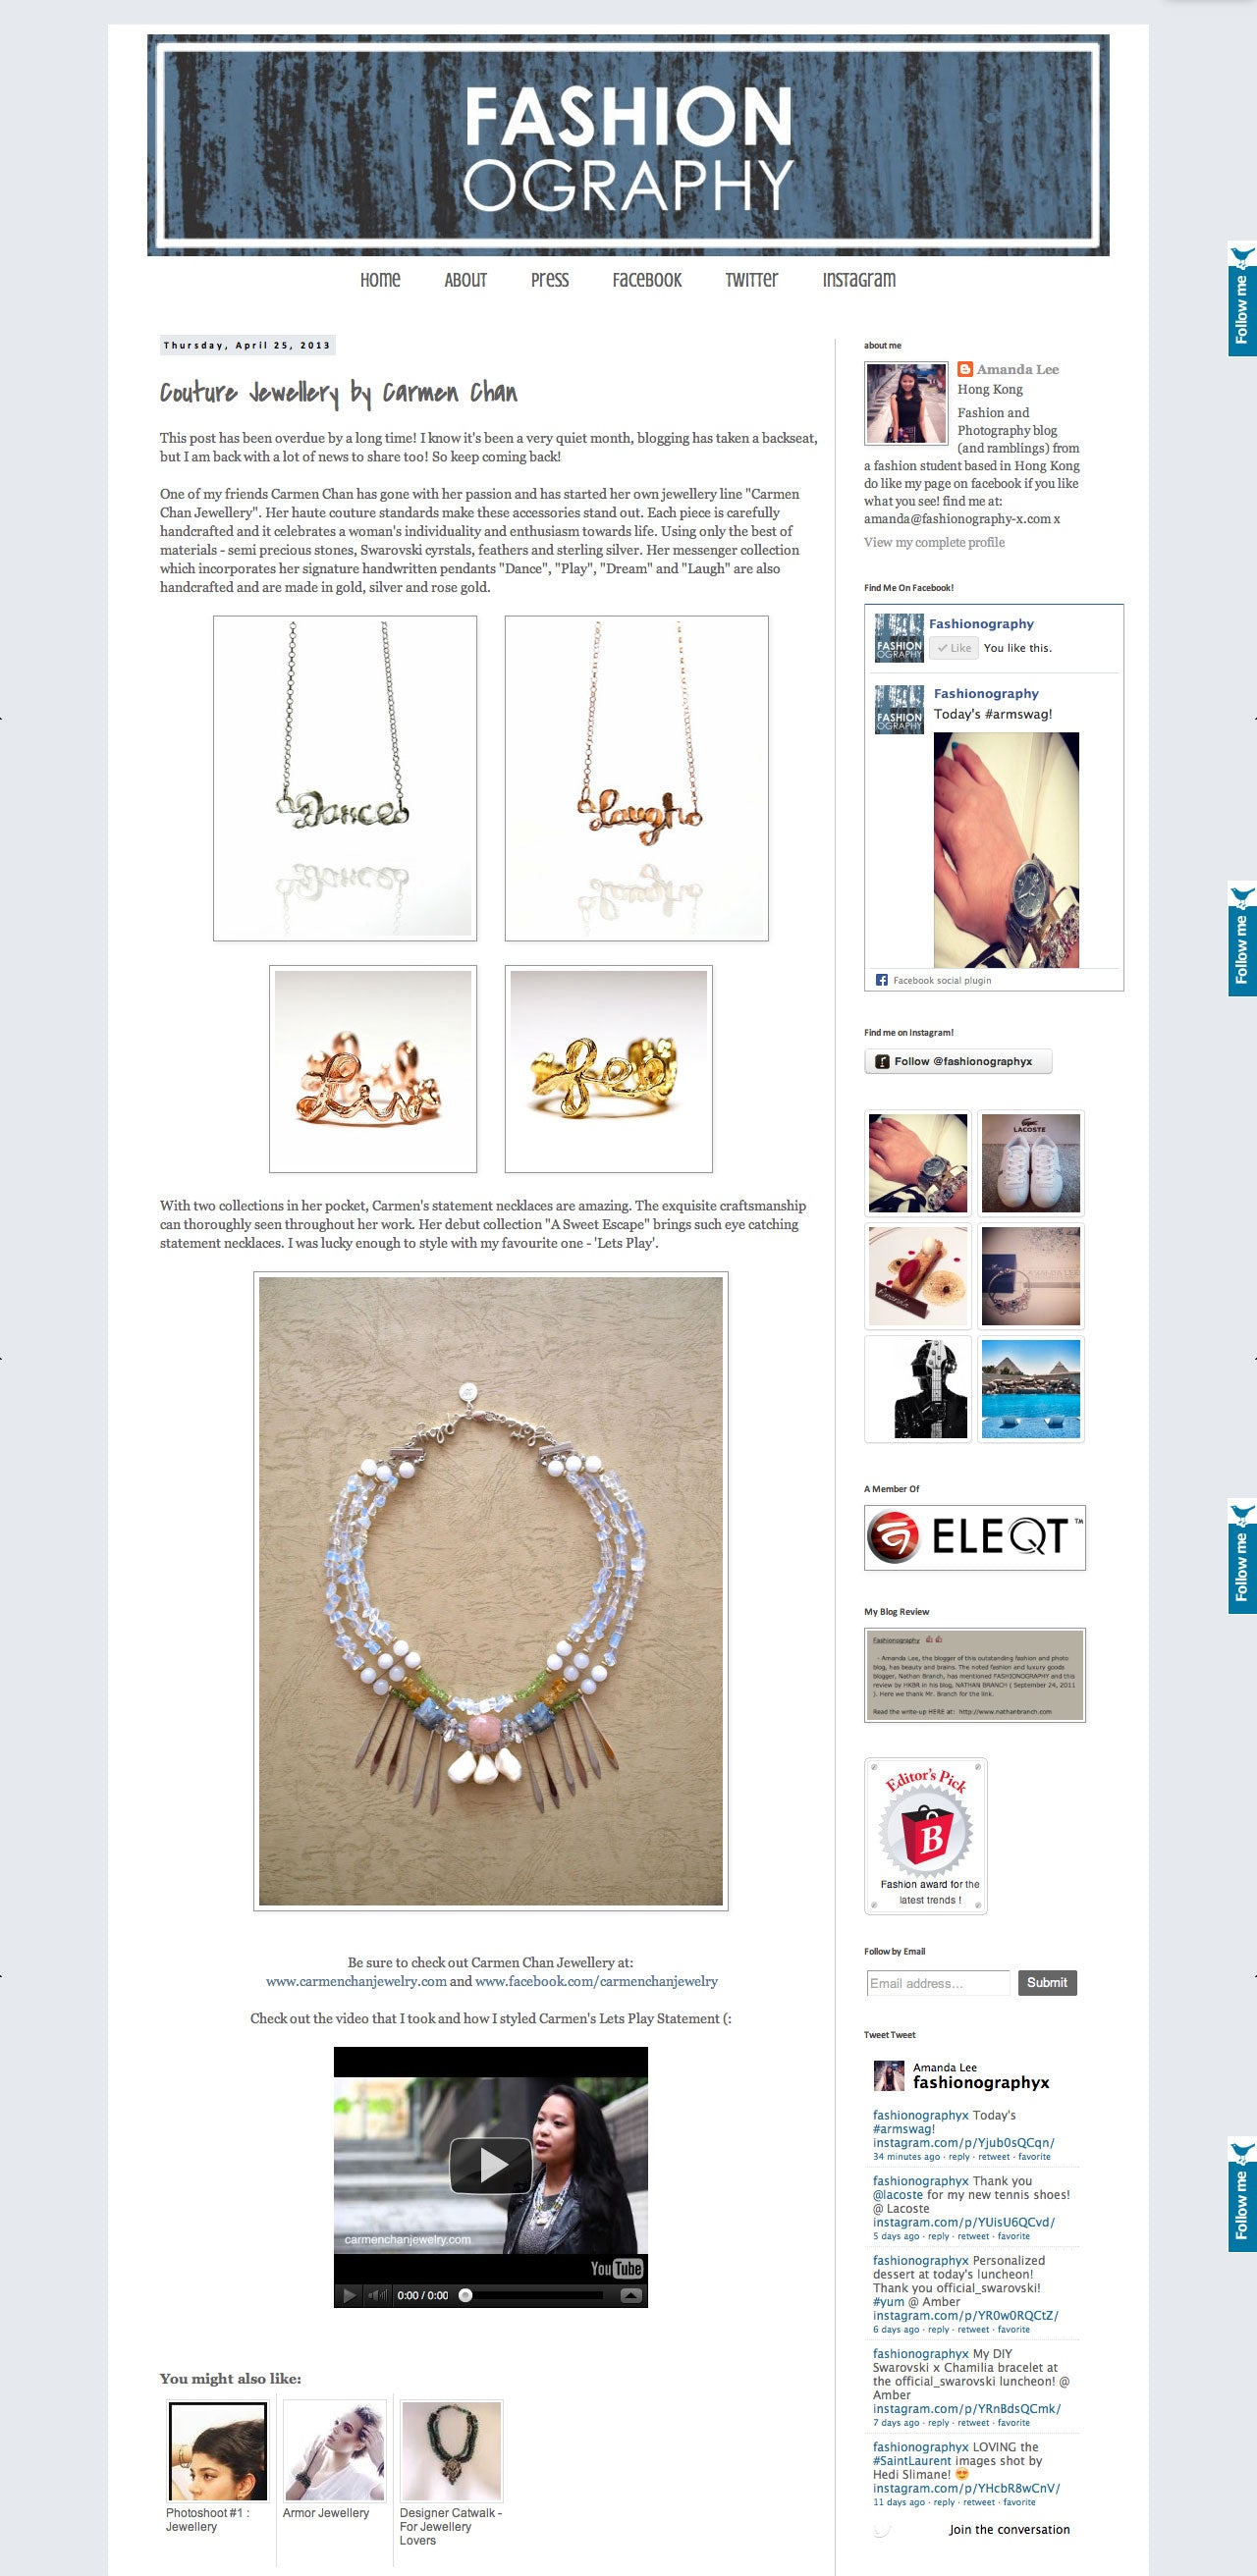 Carmen Chan Jewelry featured in Fashionography